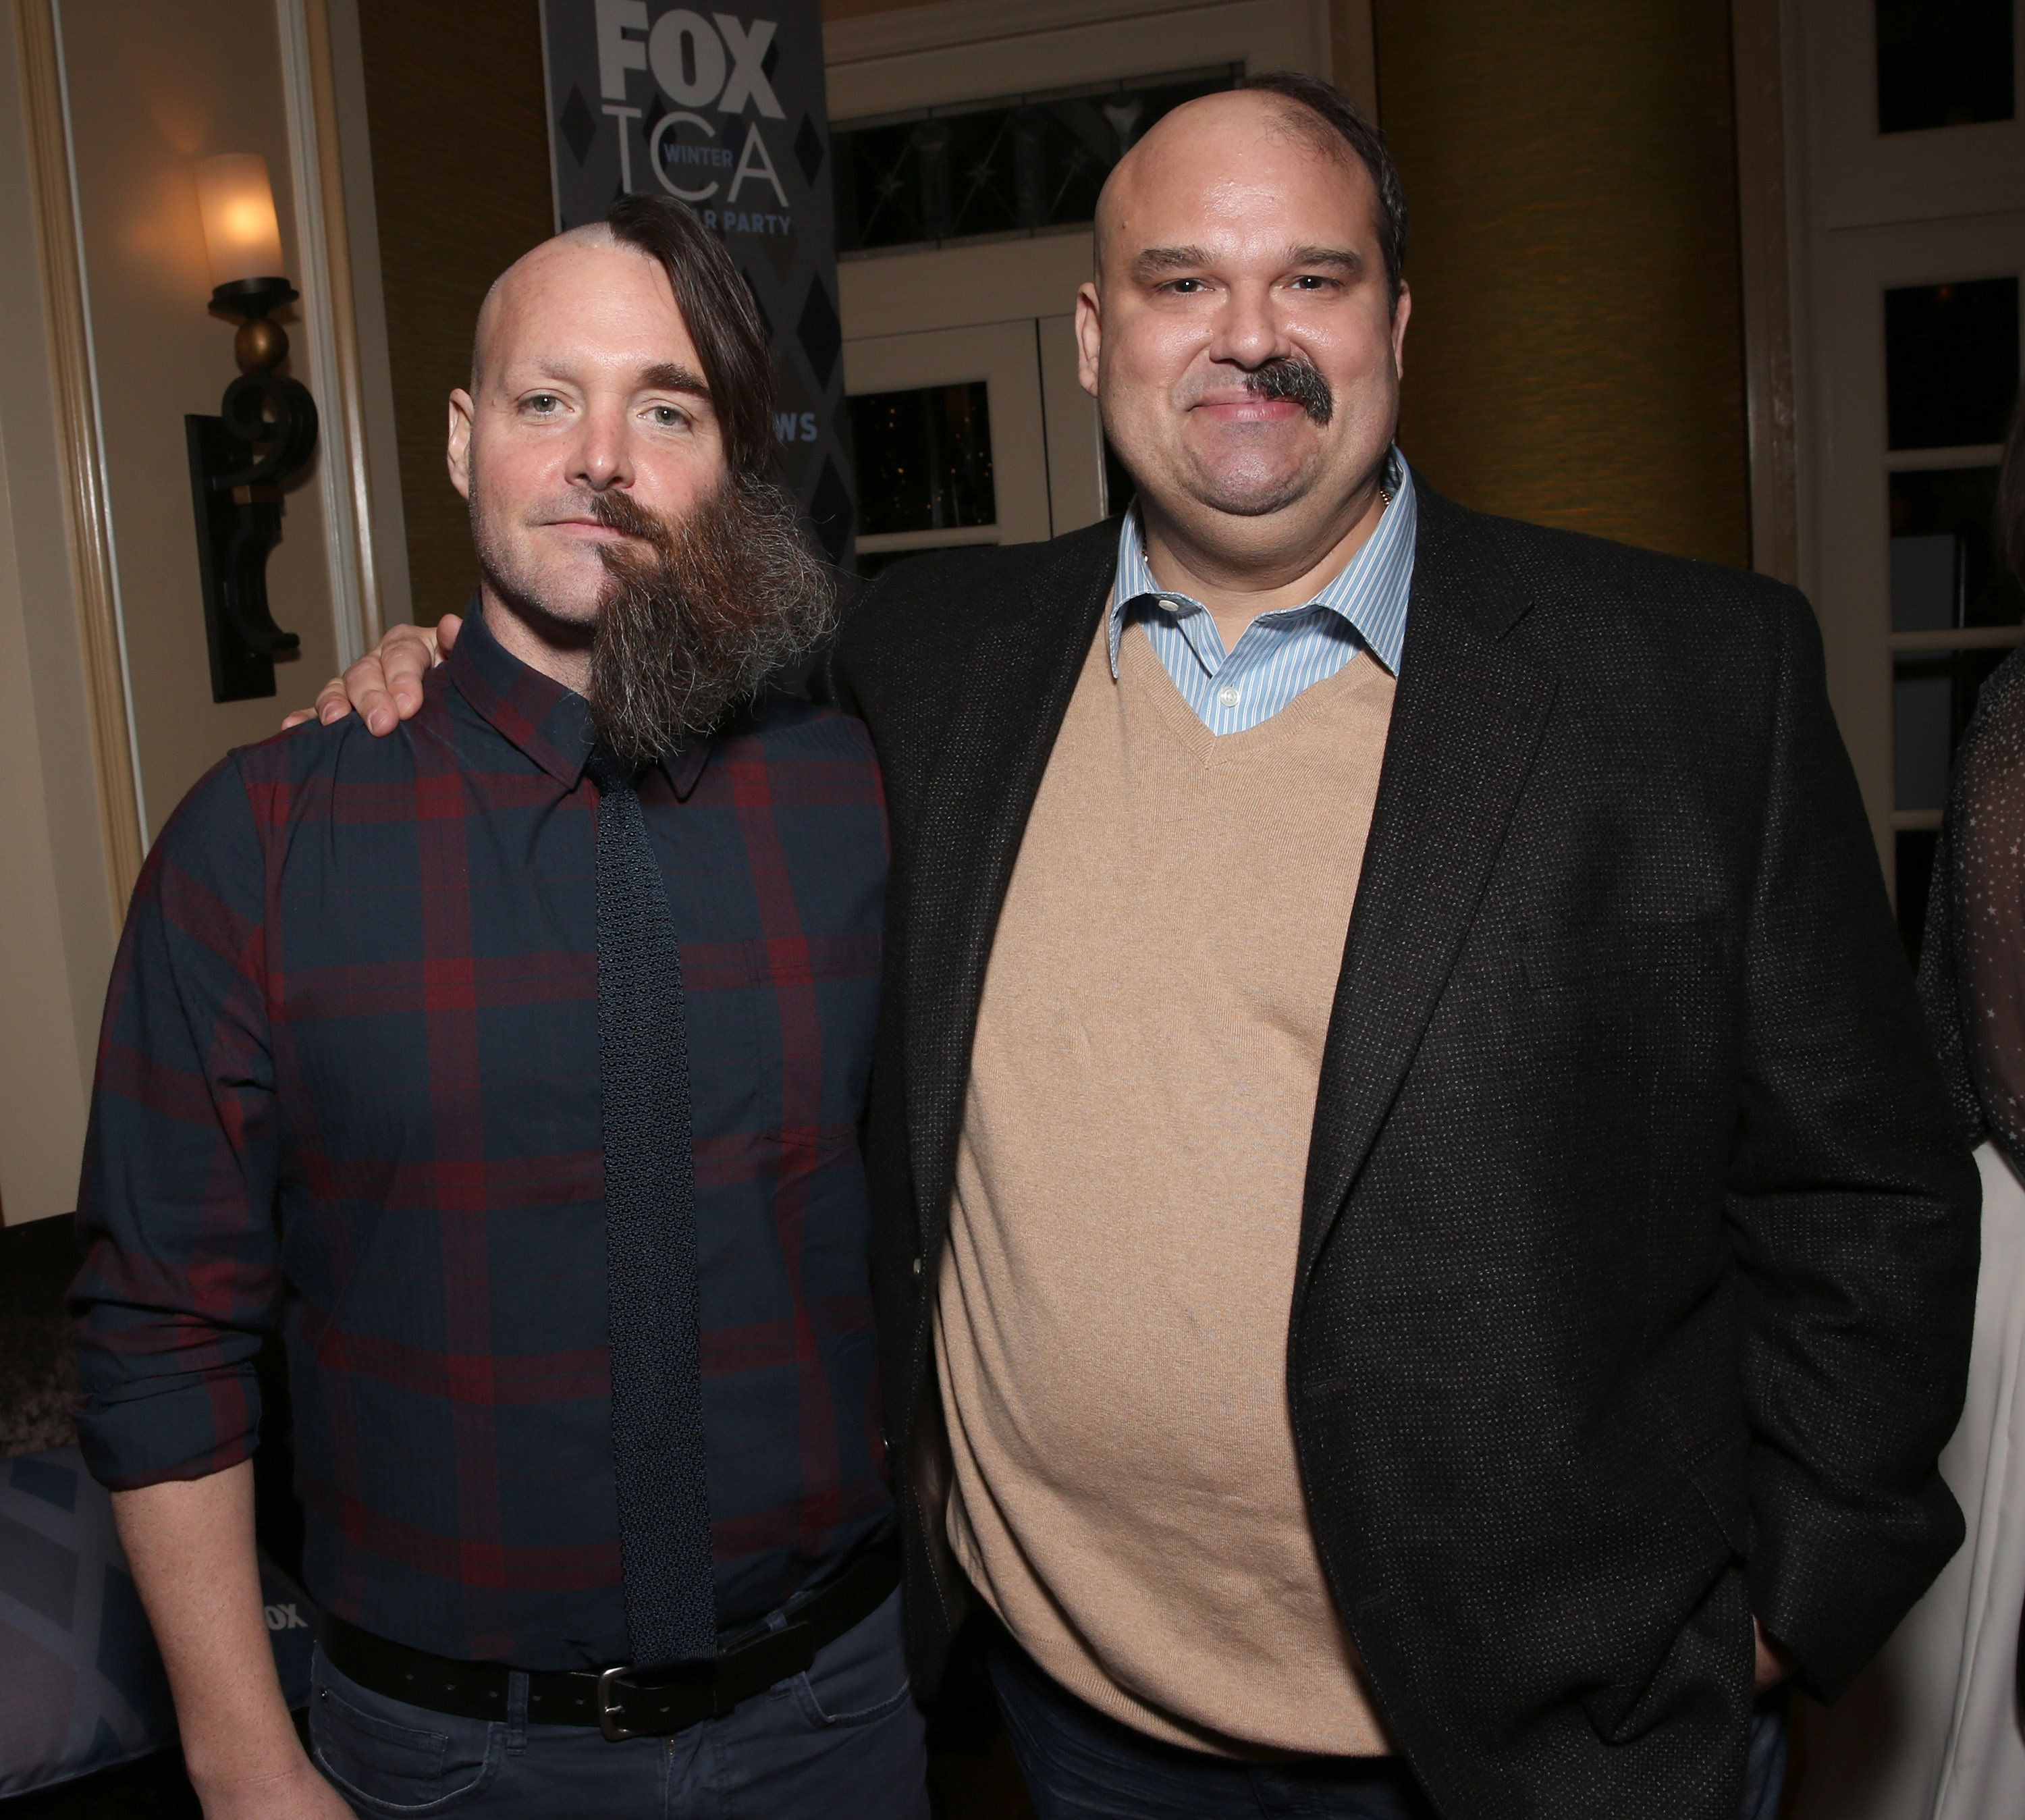 PASADENA, CA - JANUARY 15:  Will Forte and Mel Rodriguez attend the 2016 Winter TCA Tour FOX All Star Party at The Langham Huntington Hotel and Spa on January 15, 2016 in Pasadena, California.  (Photo by Todd Williamson/Getty Images)